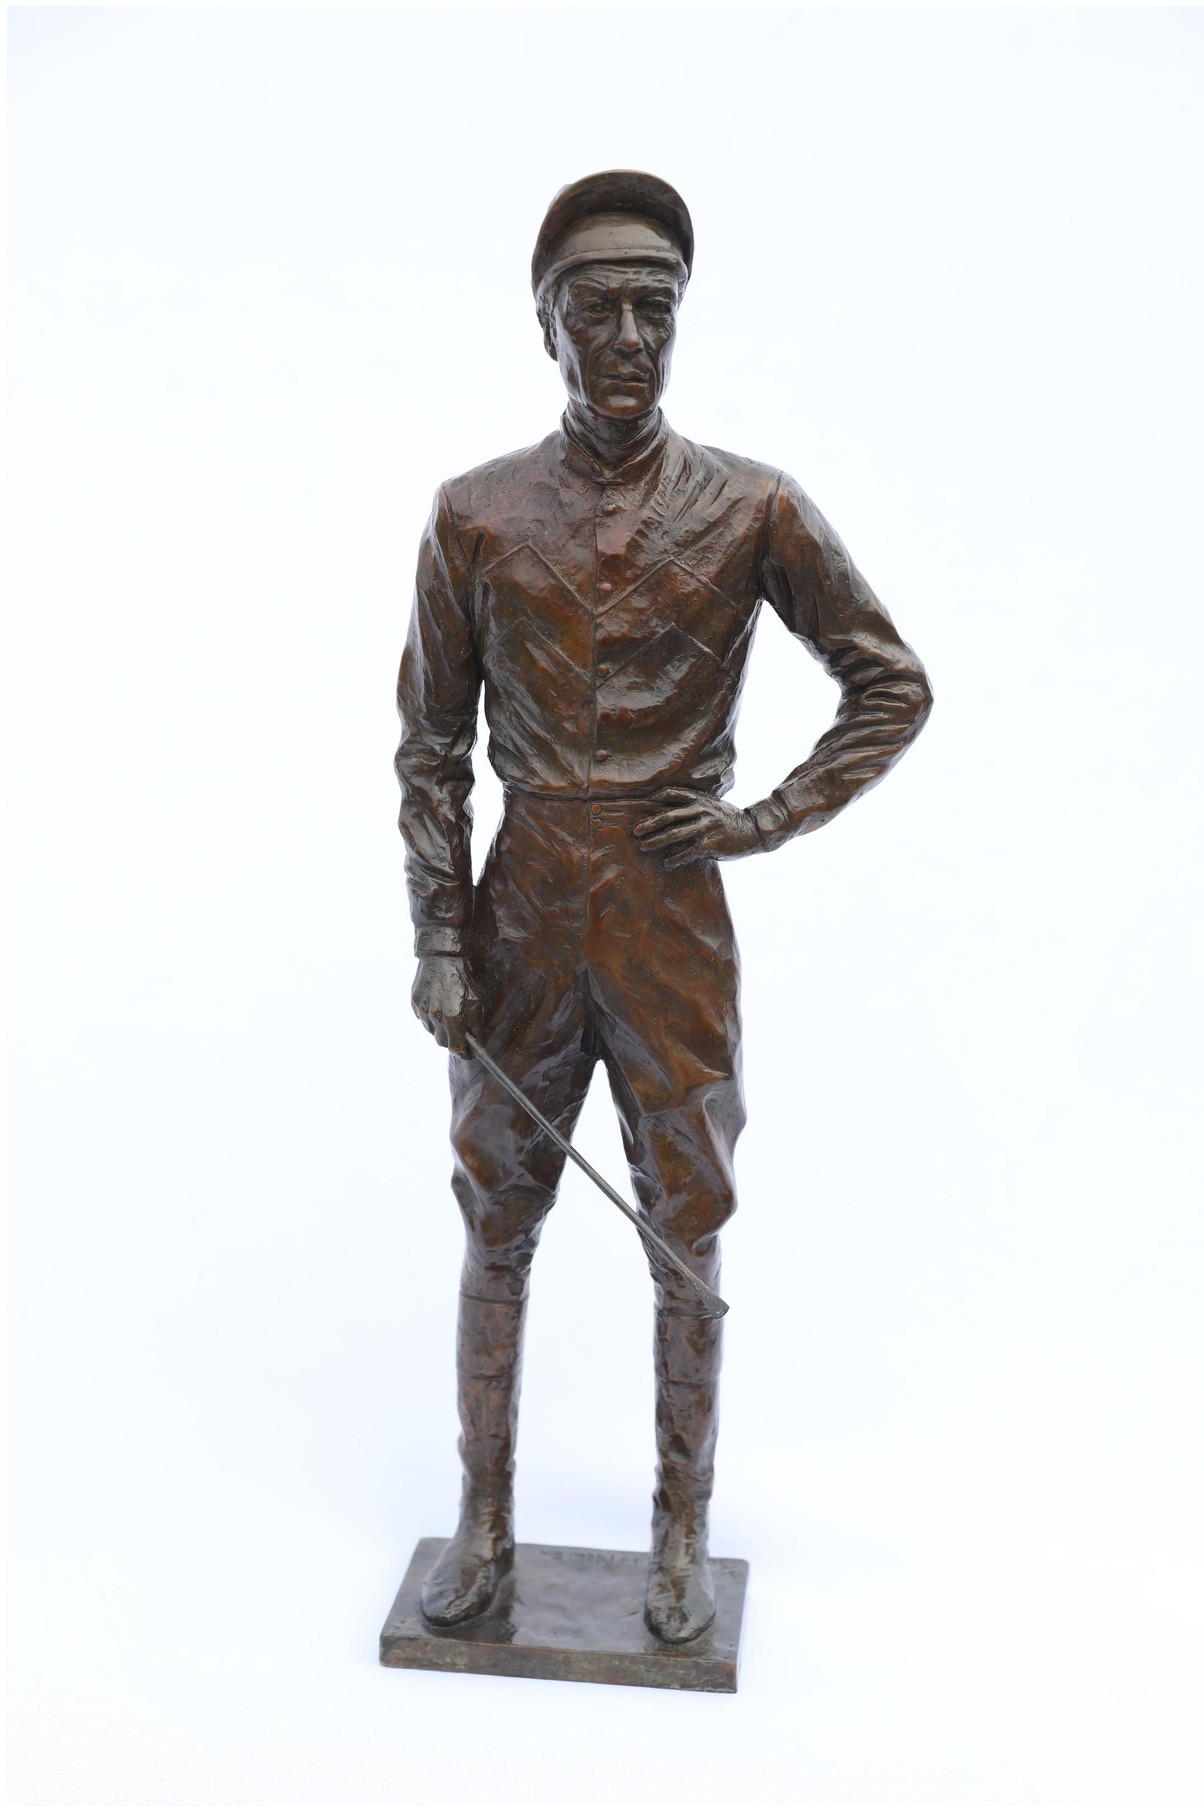 'The Working Maquette' for the life size sculpture, Lester Piggott by William Newton